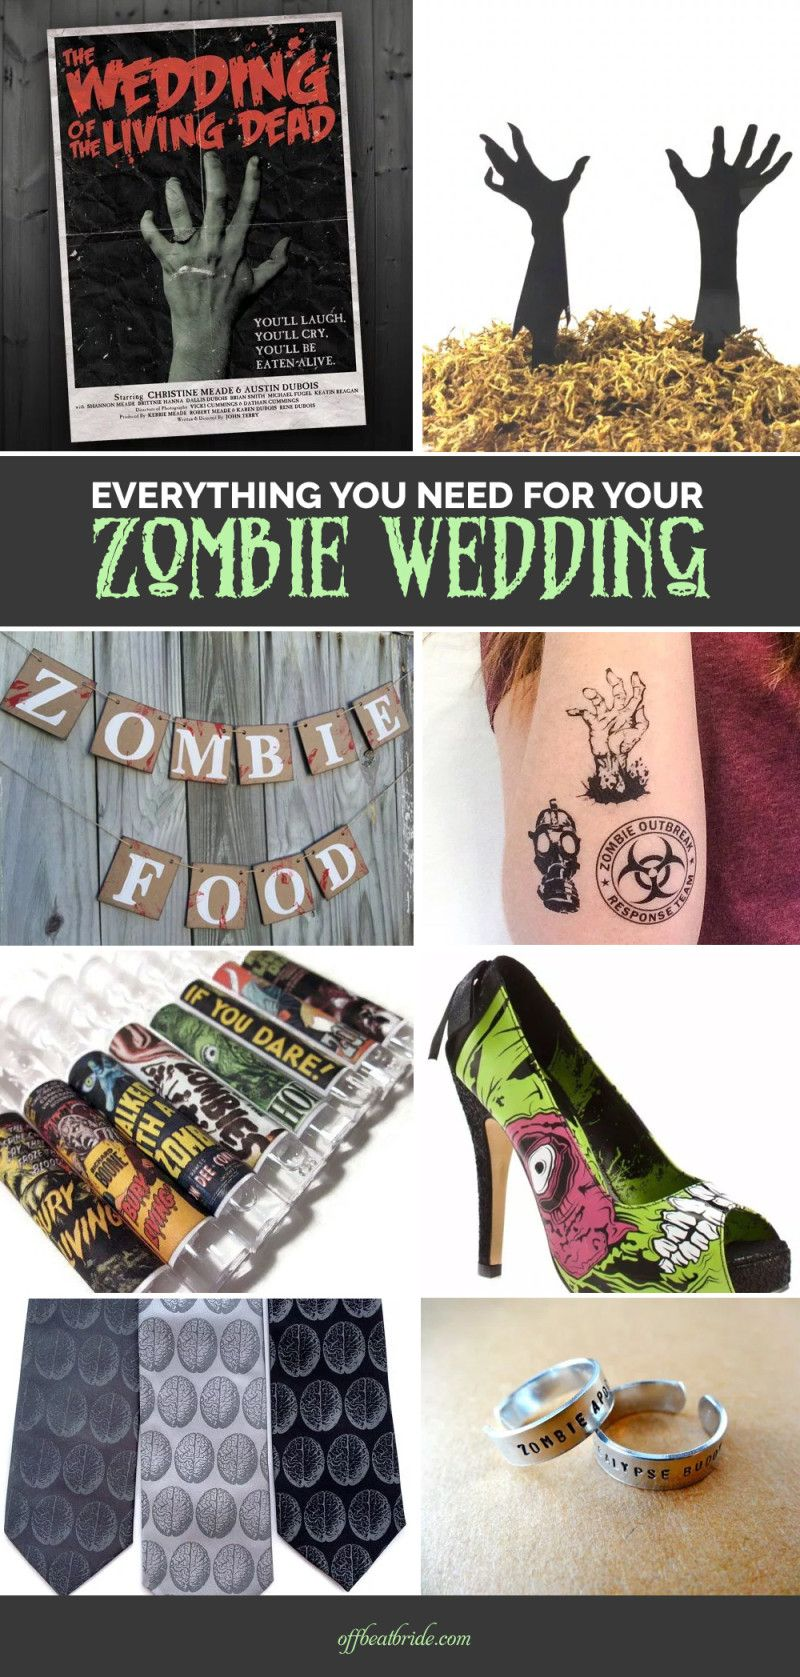 Zombie wedding decorations  Everything you need for the most badass zombiethemed wedding axes